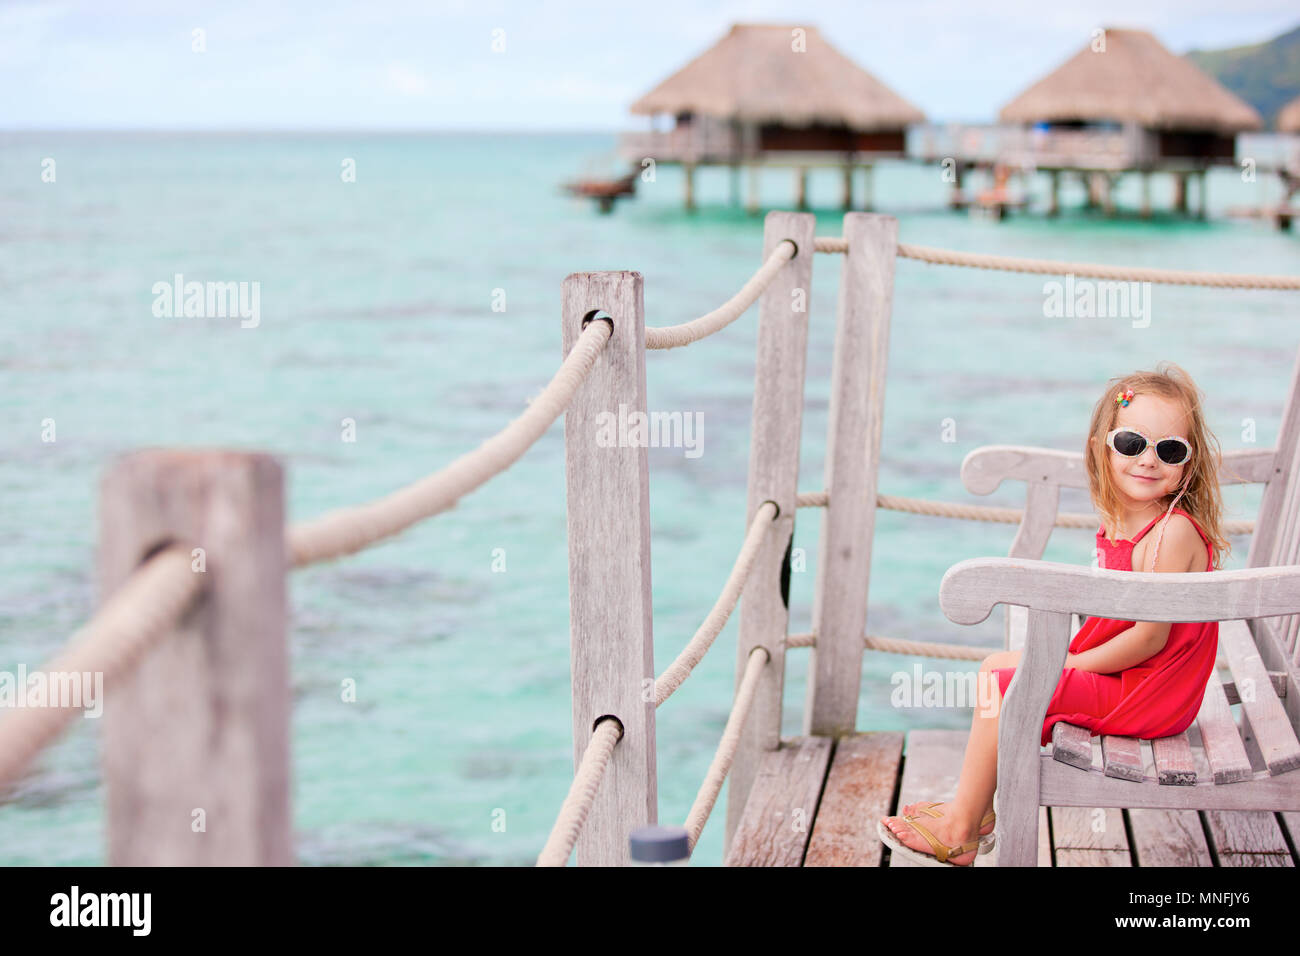 Little girl at terrace of over water bungalow - Stock Image